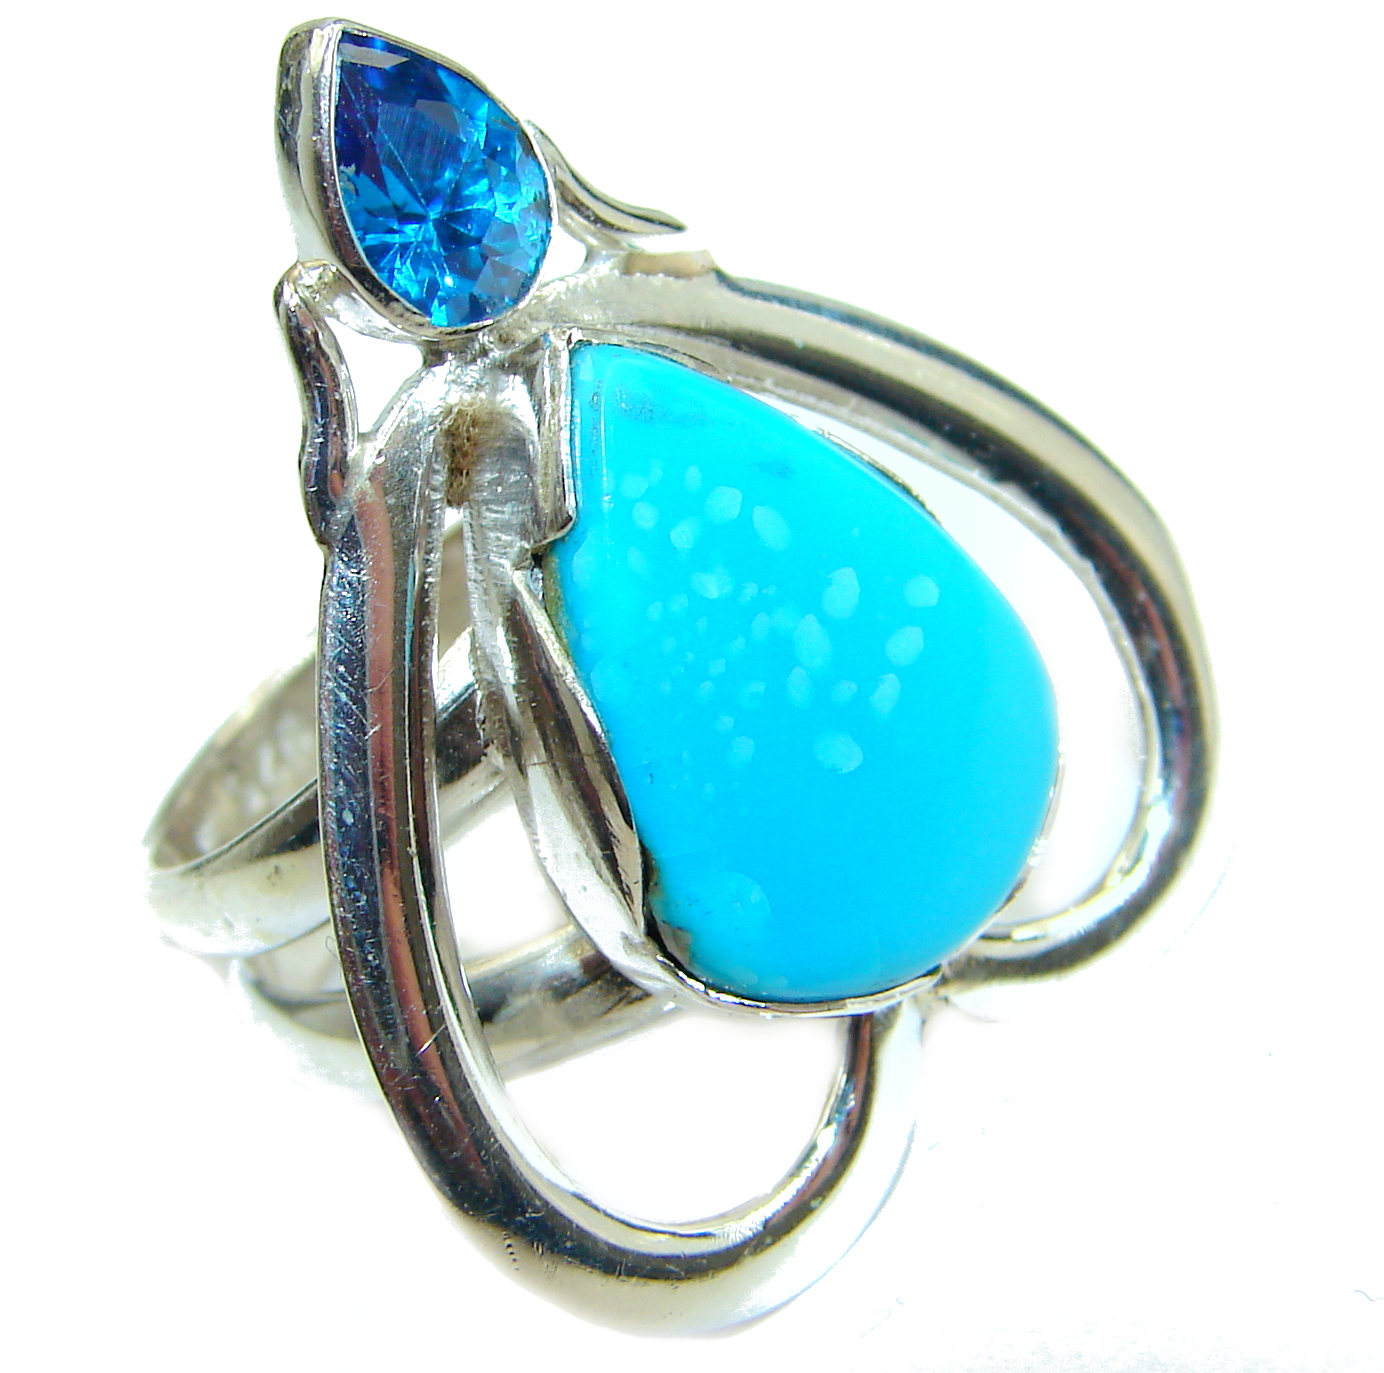 Genuine Sleeping Beauty Turquoise .925 Sterling Silver Ring size 6